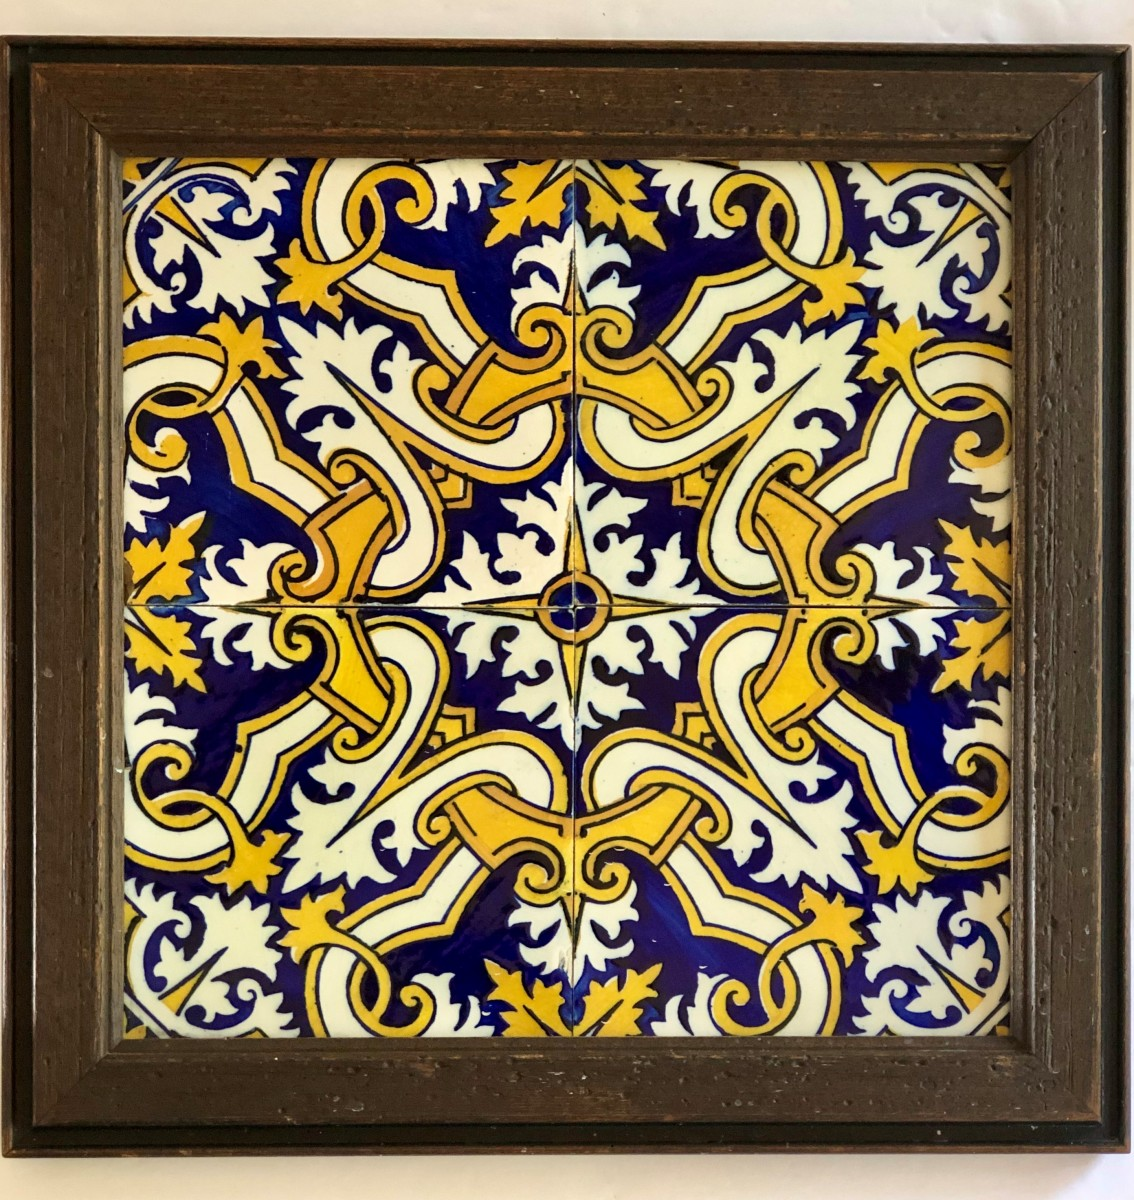 A framed group of 6- by 6-inch ceramic tiles depicting an Italian motif dating to the early 20th century.